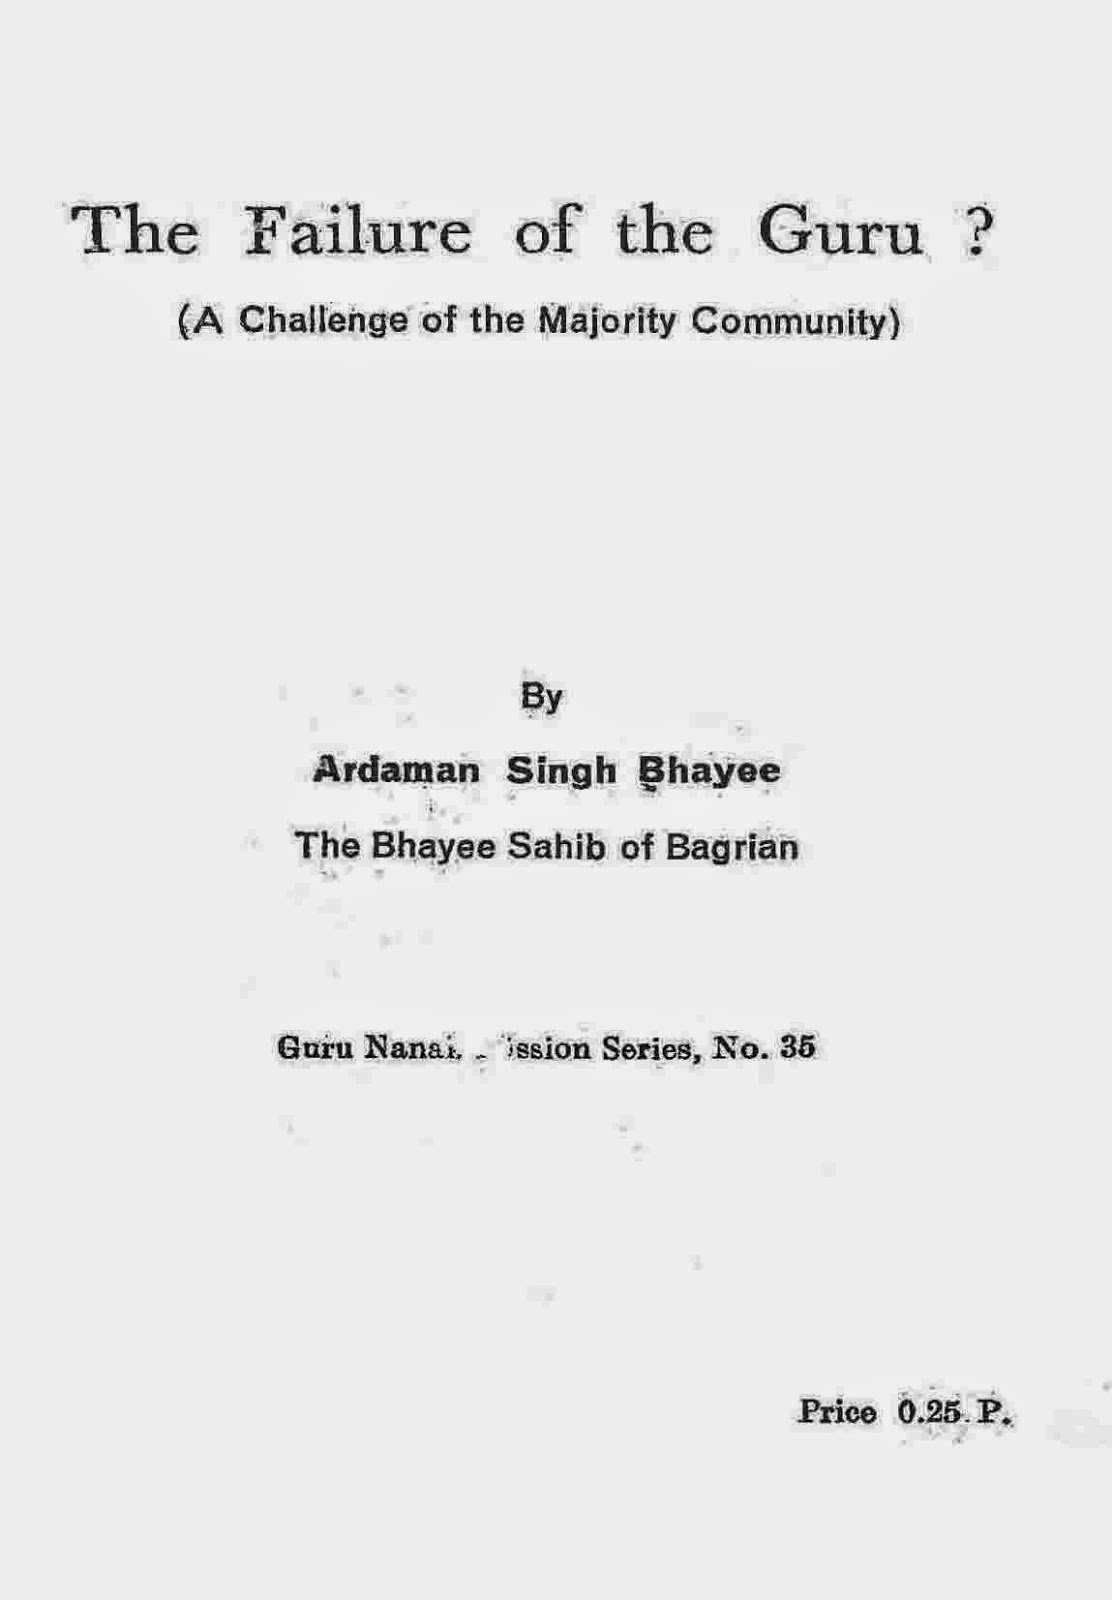 http://sikhdigitallibrary.blogspot.com/2015/08/the-failure-of-guru-ardaman-singh.html